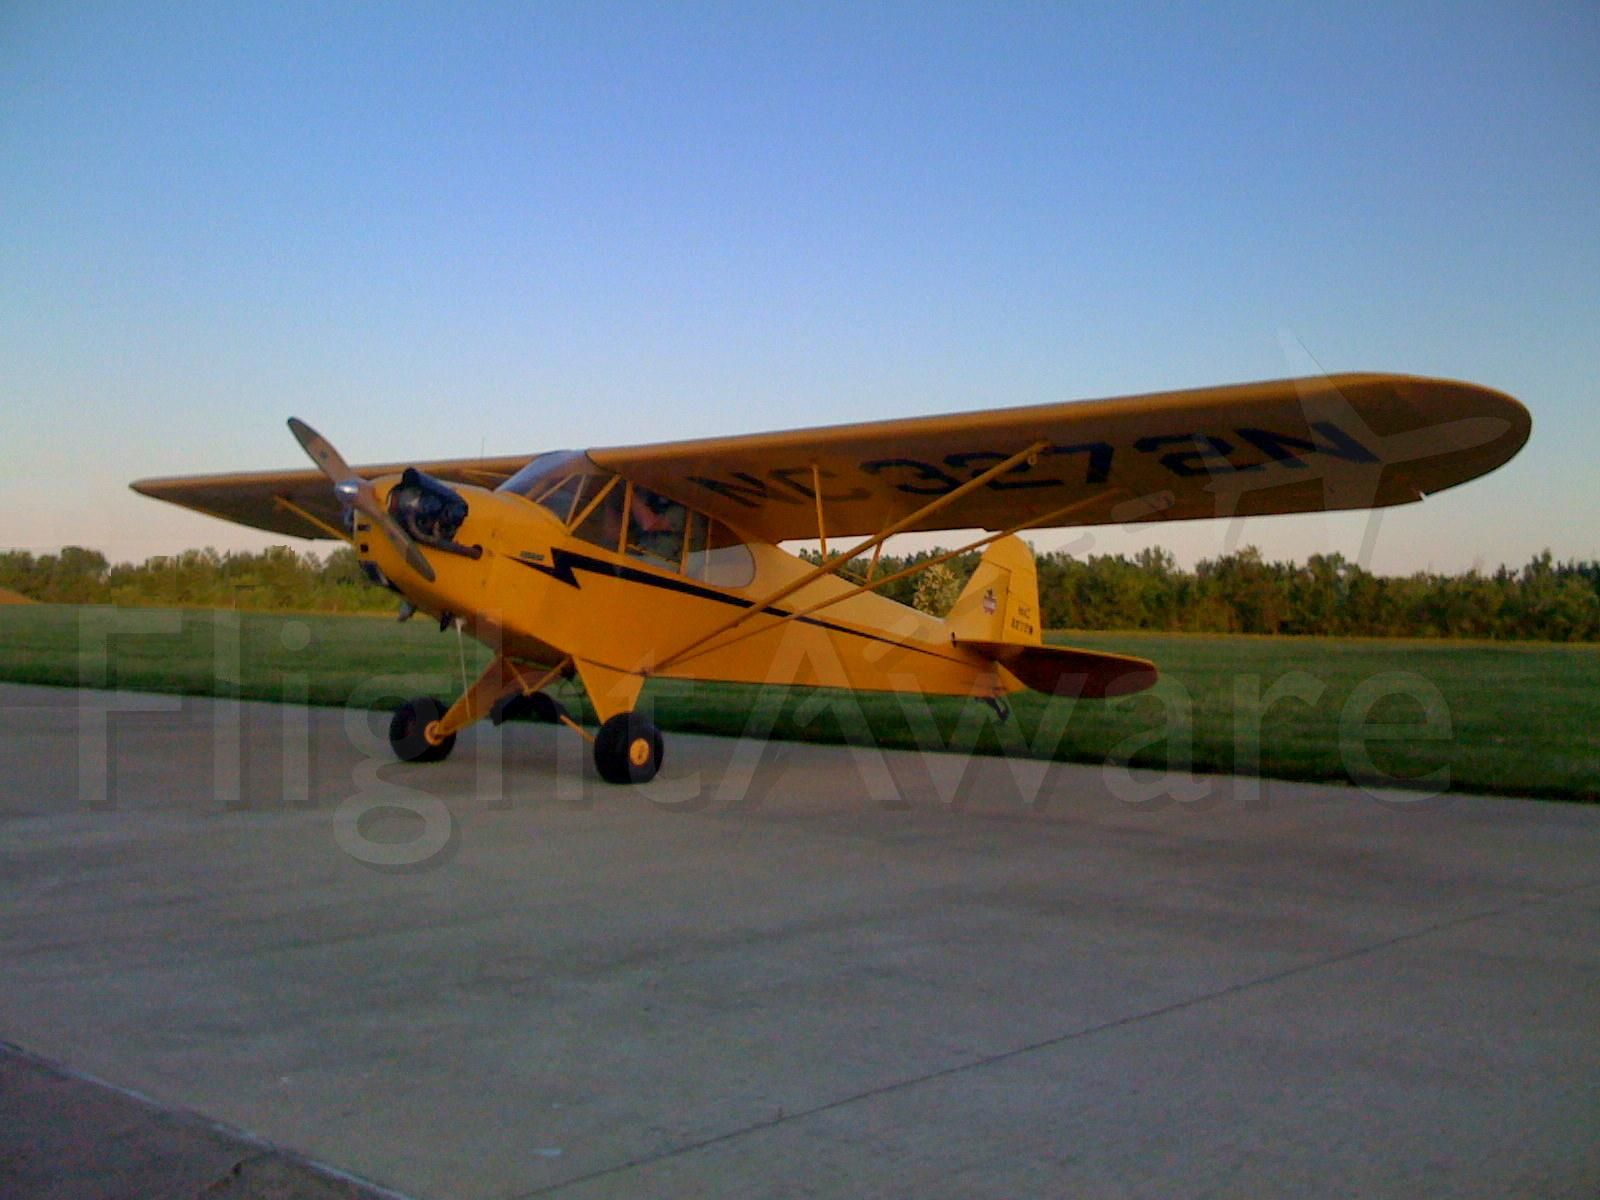 NC3272N — - Cub at the Lawrence County Airpark - Ohio KHTW